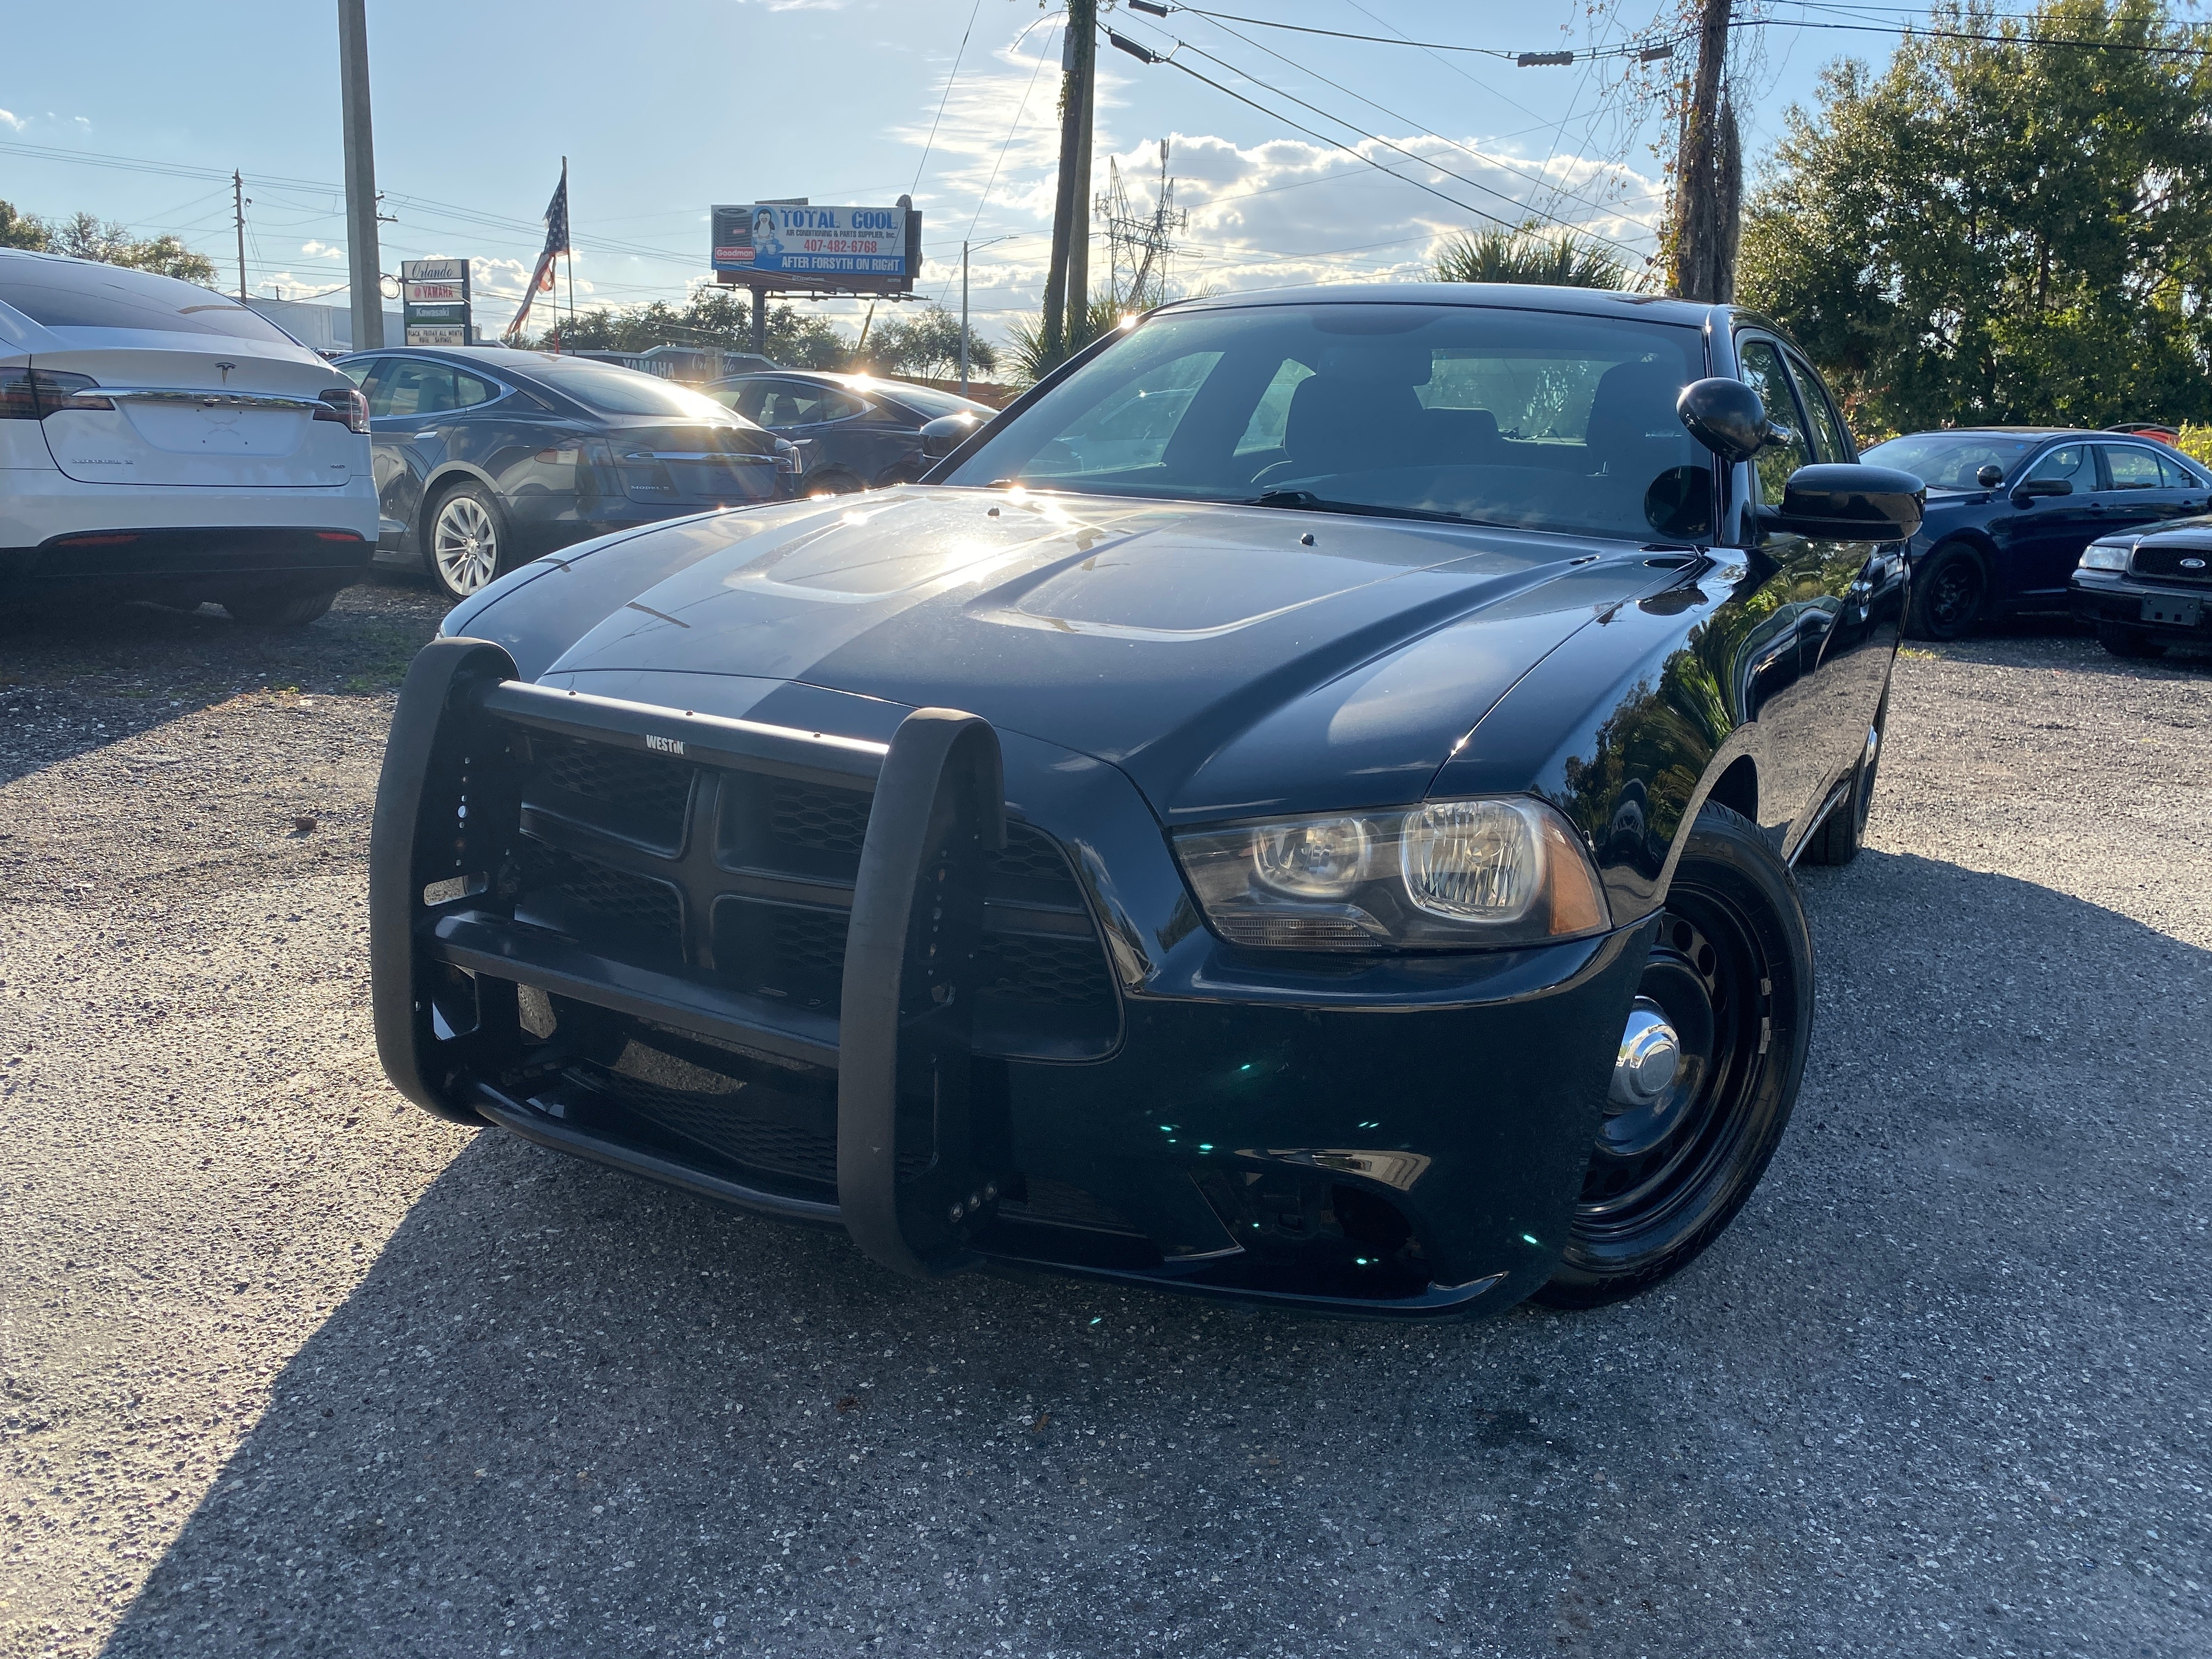 Police Charger For Sale >> 2014 Dodge Charger Police